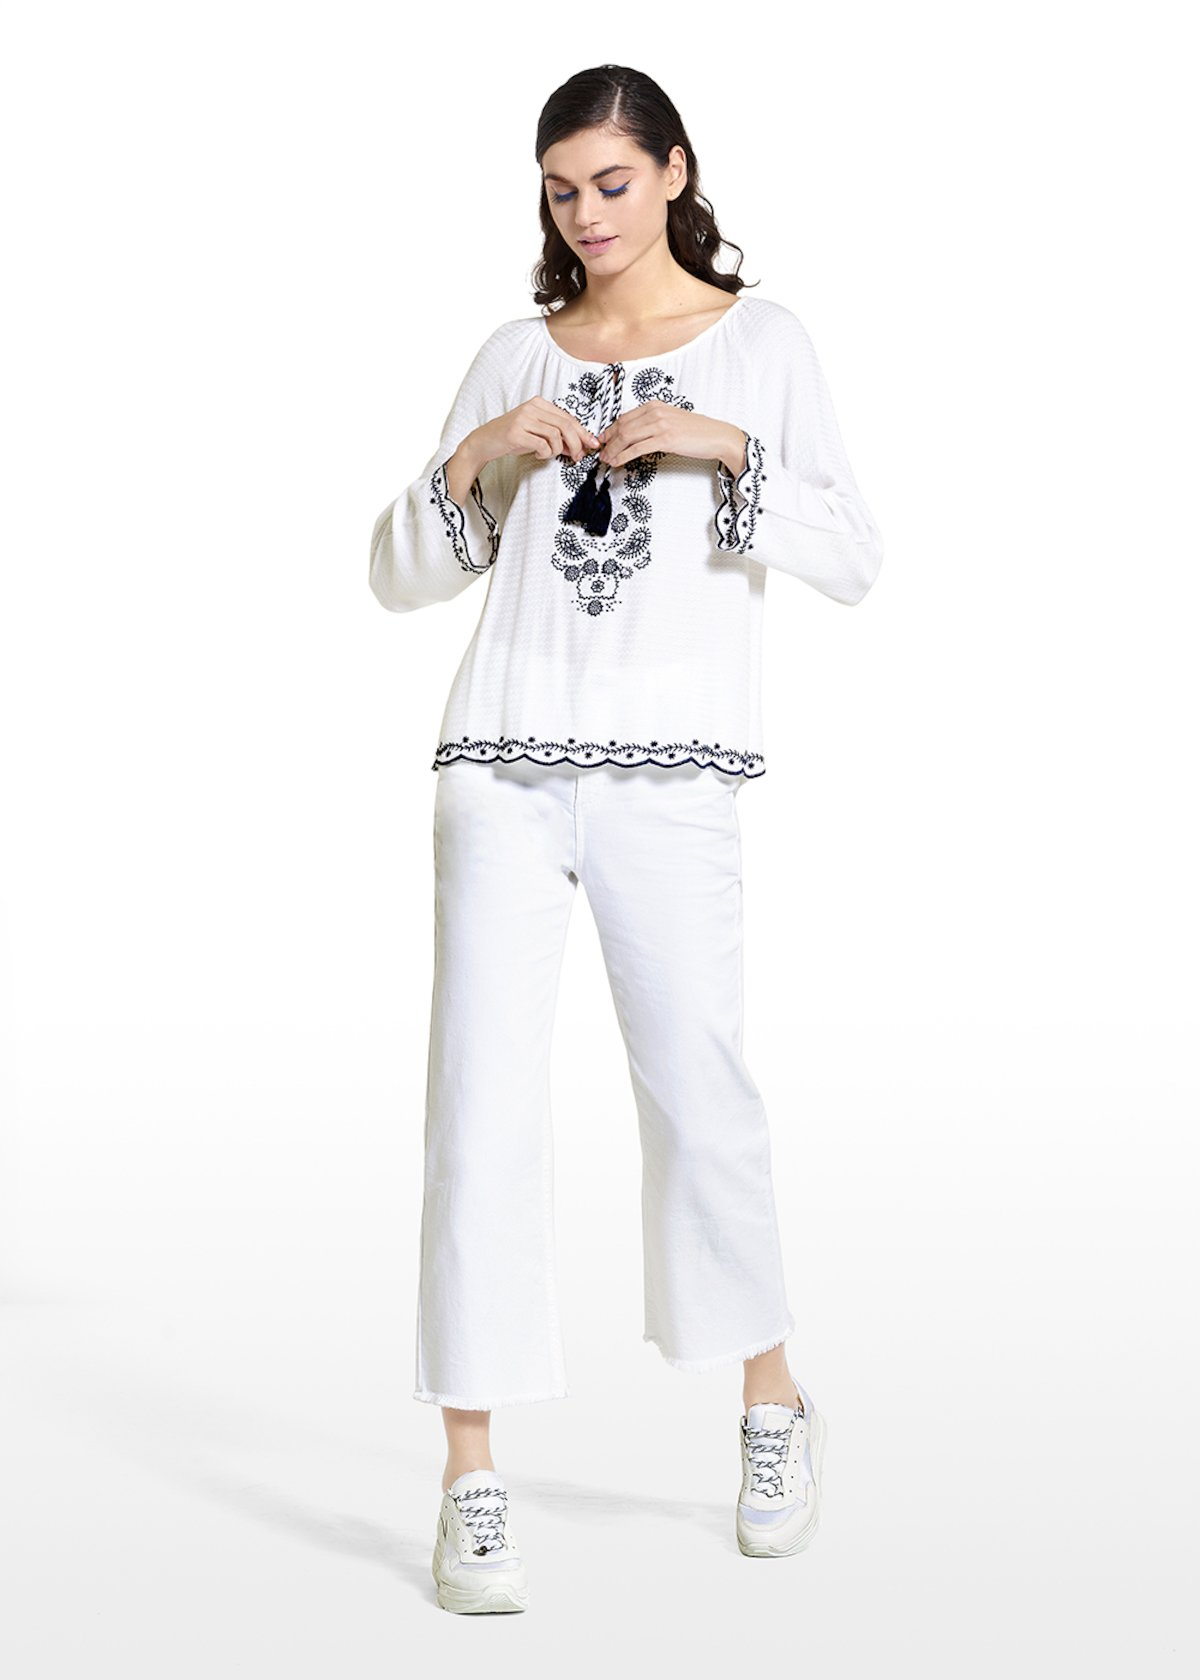 Churl blouse with central embroidery - White - Woman - Category image